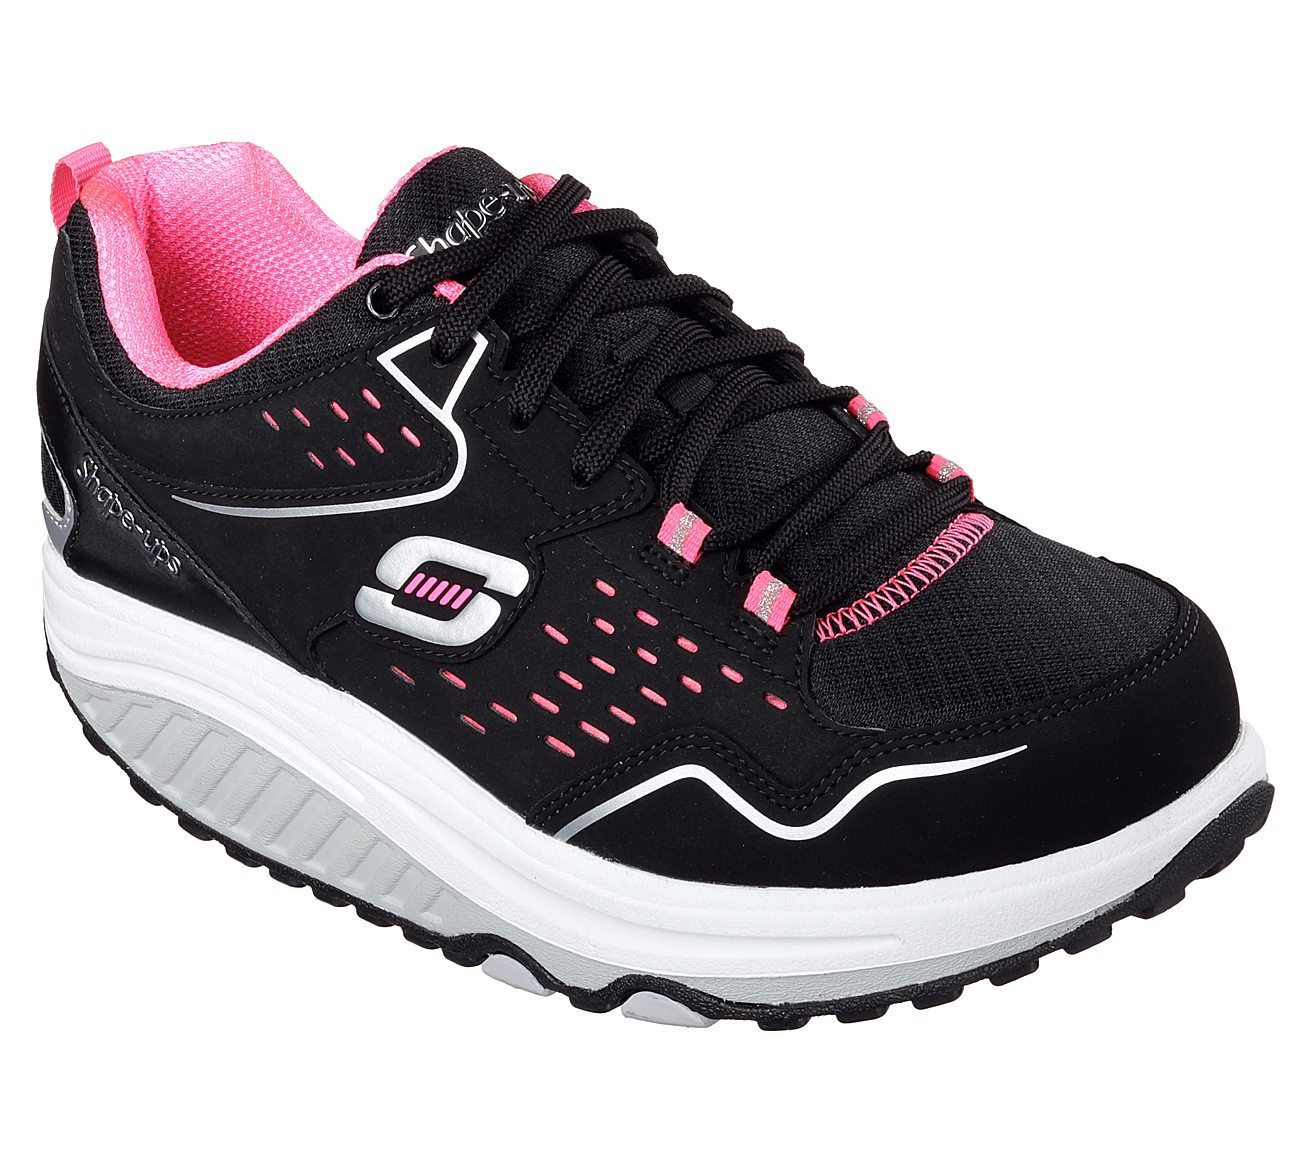 Buy SKECHERS Shape-ups 2.0 - Everyday